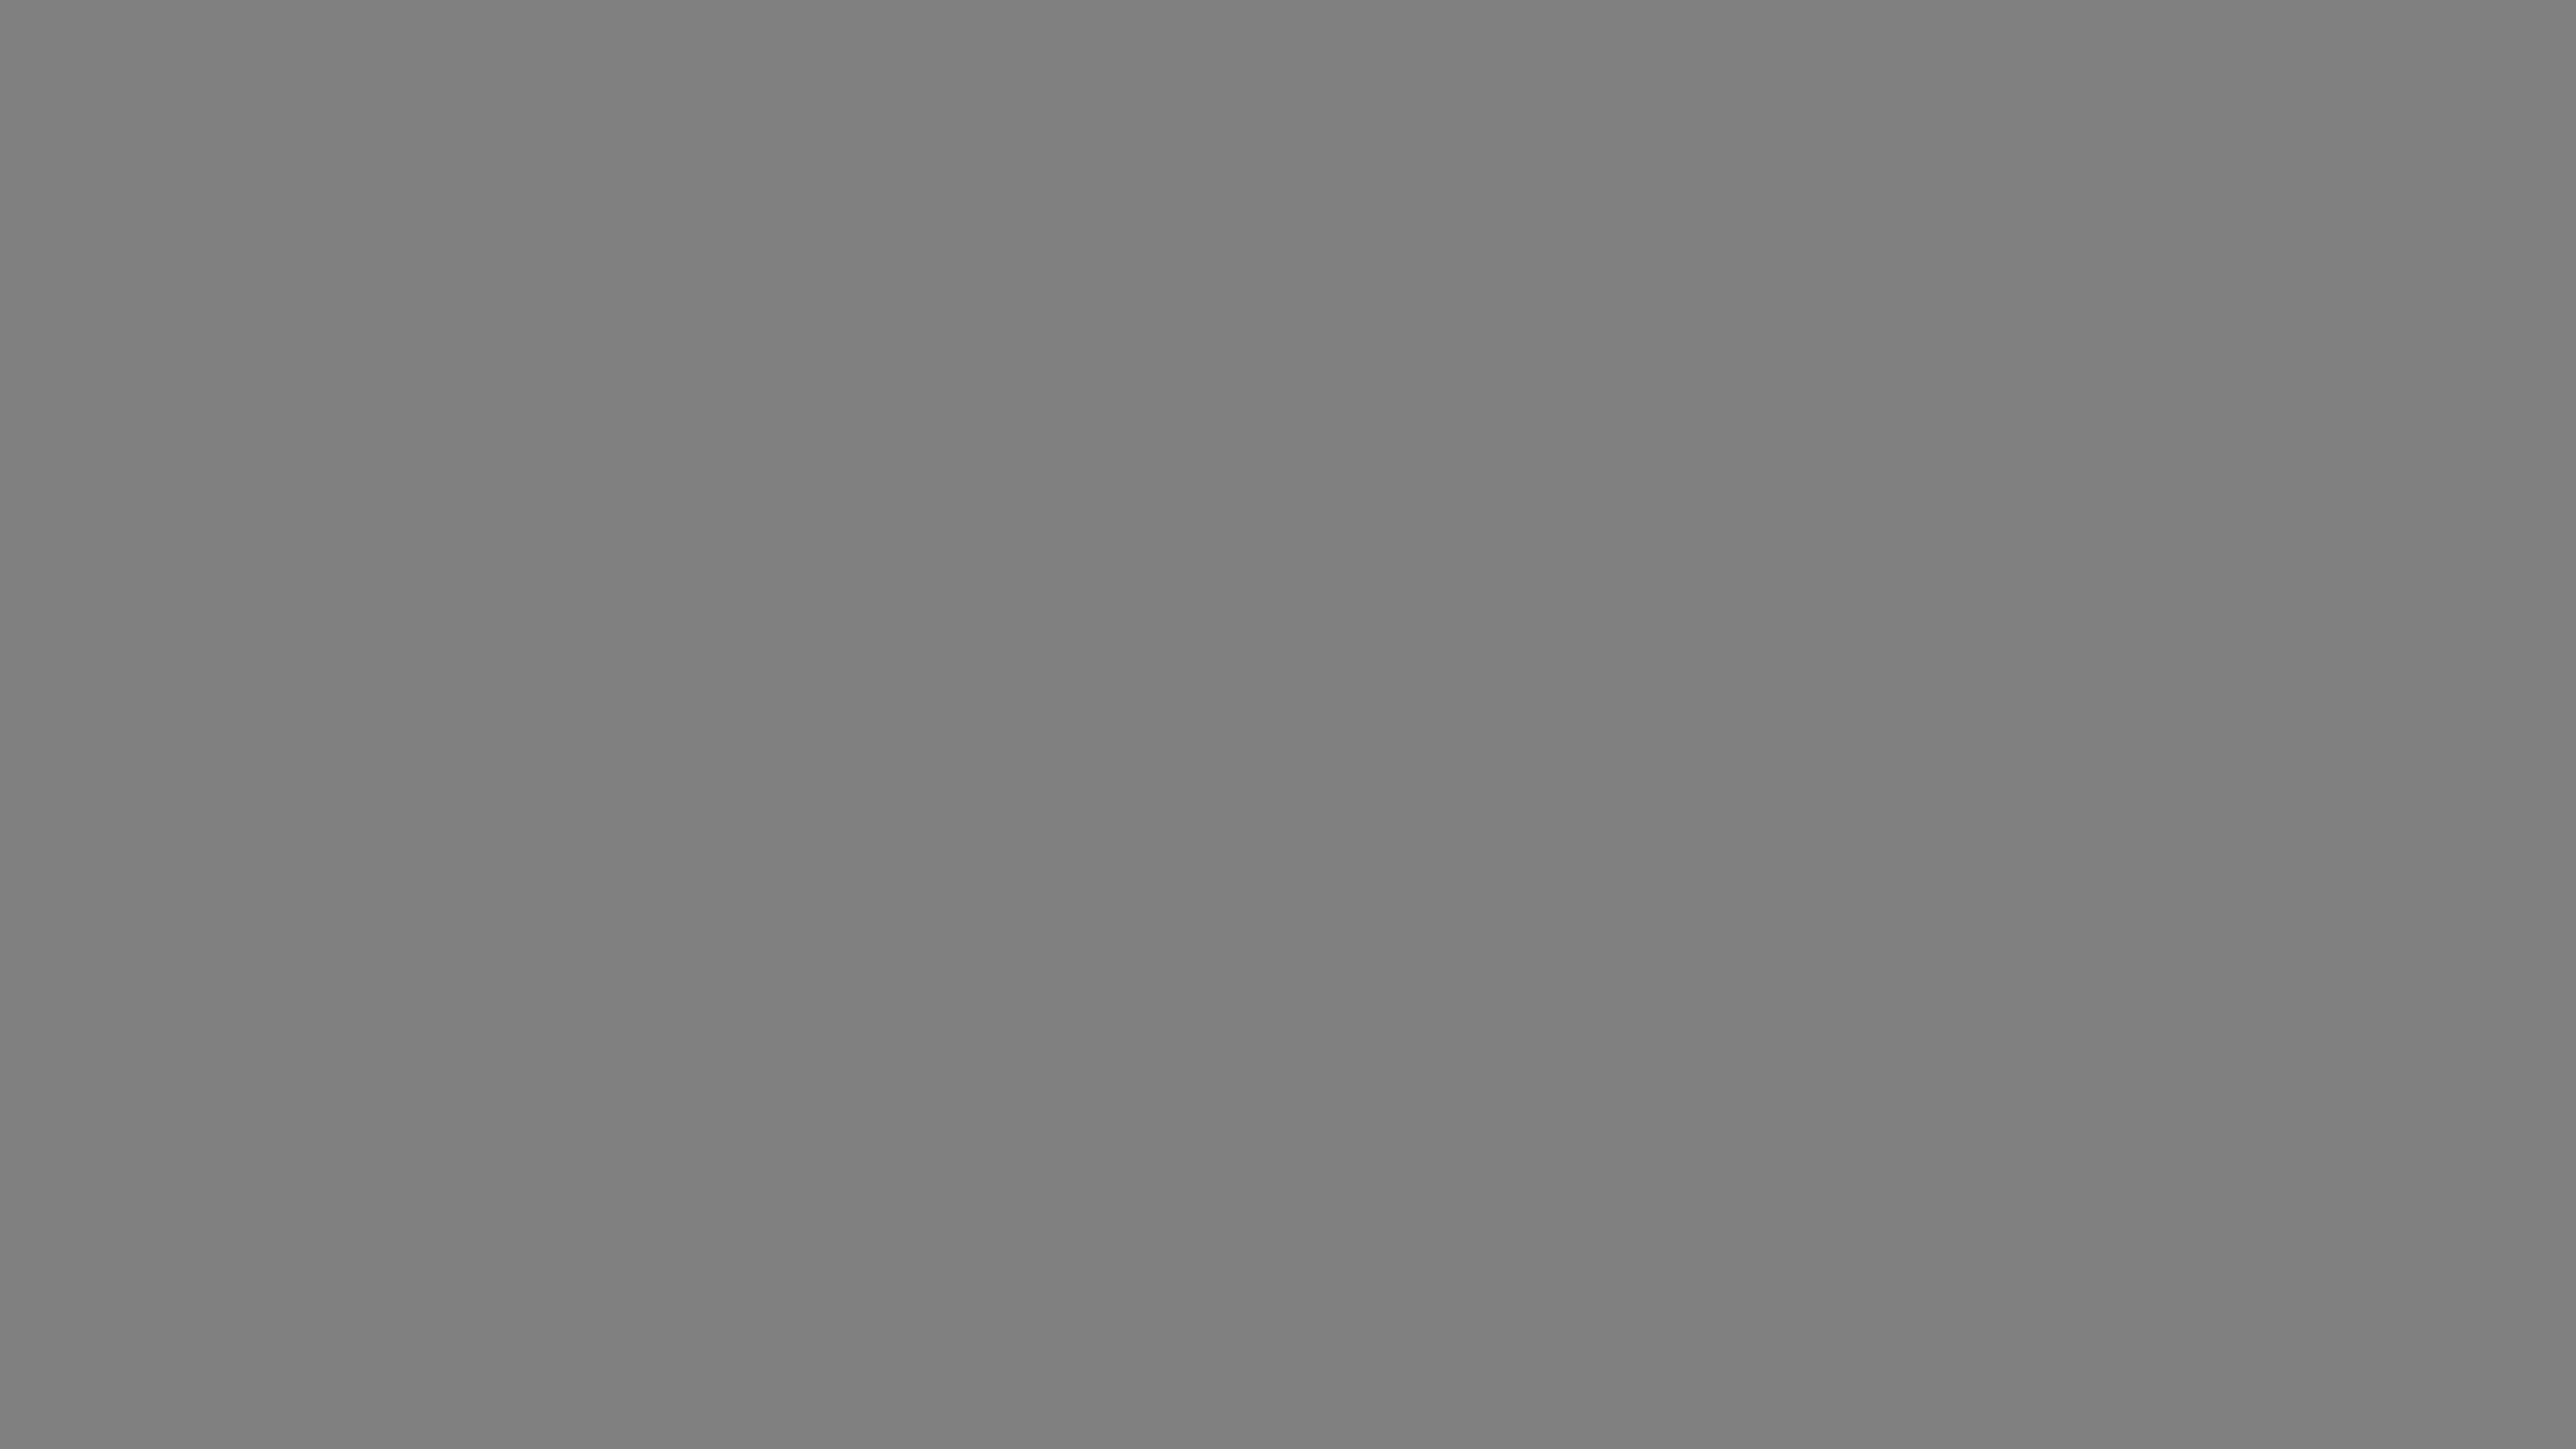 5120x2880 Gray Solid Color Background